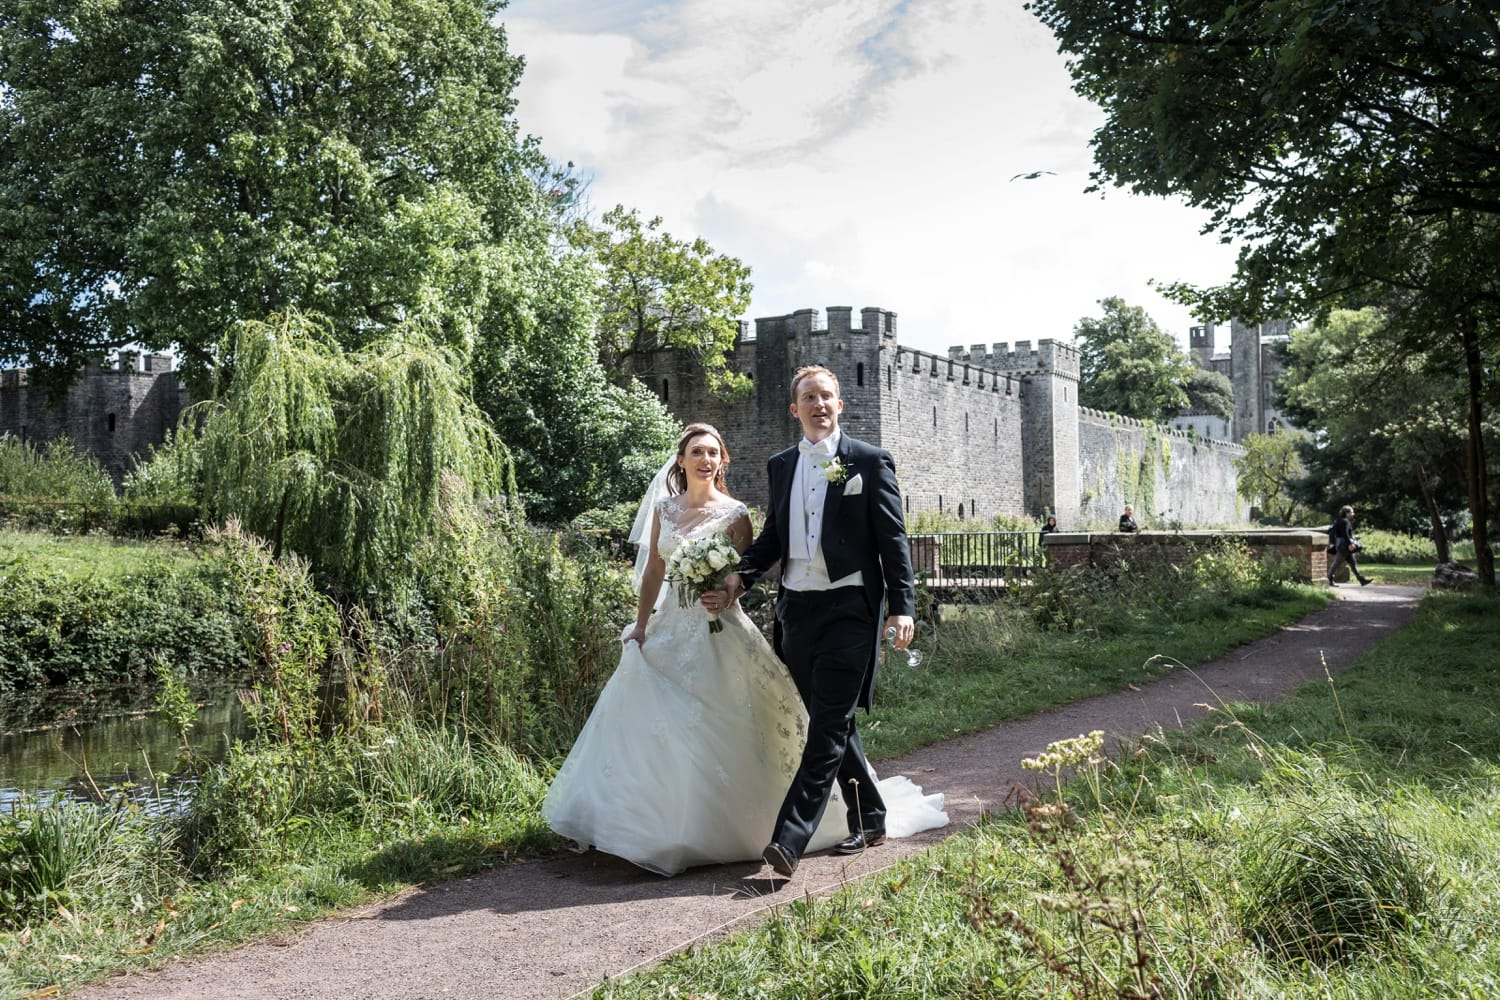 Bride and groom in Coopers Field, Cardiff, South Wales